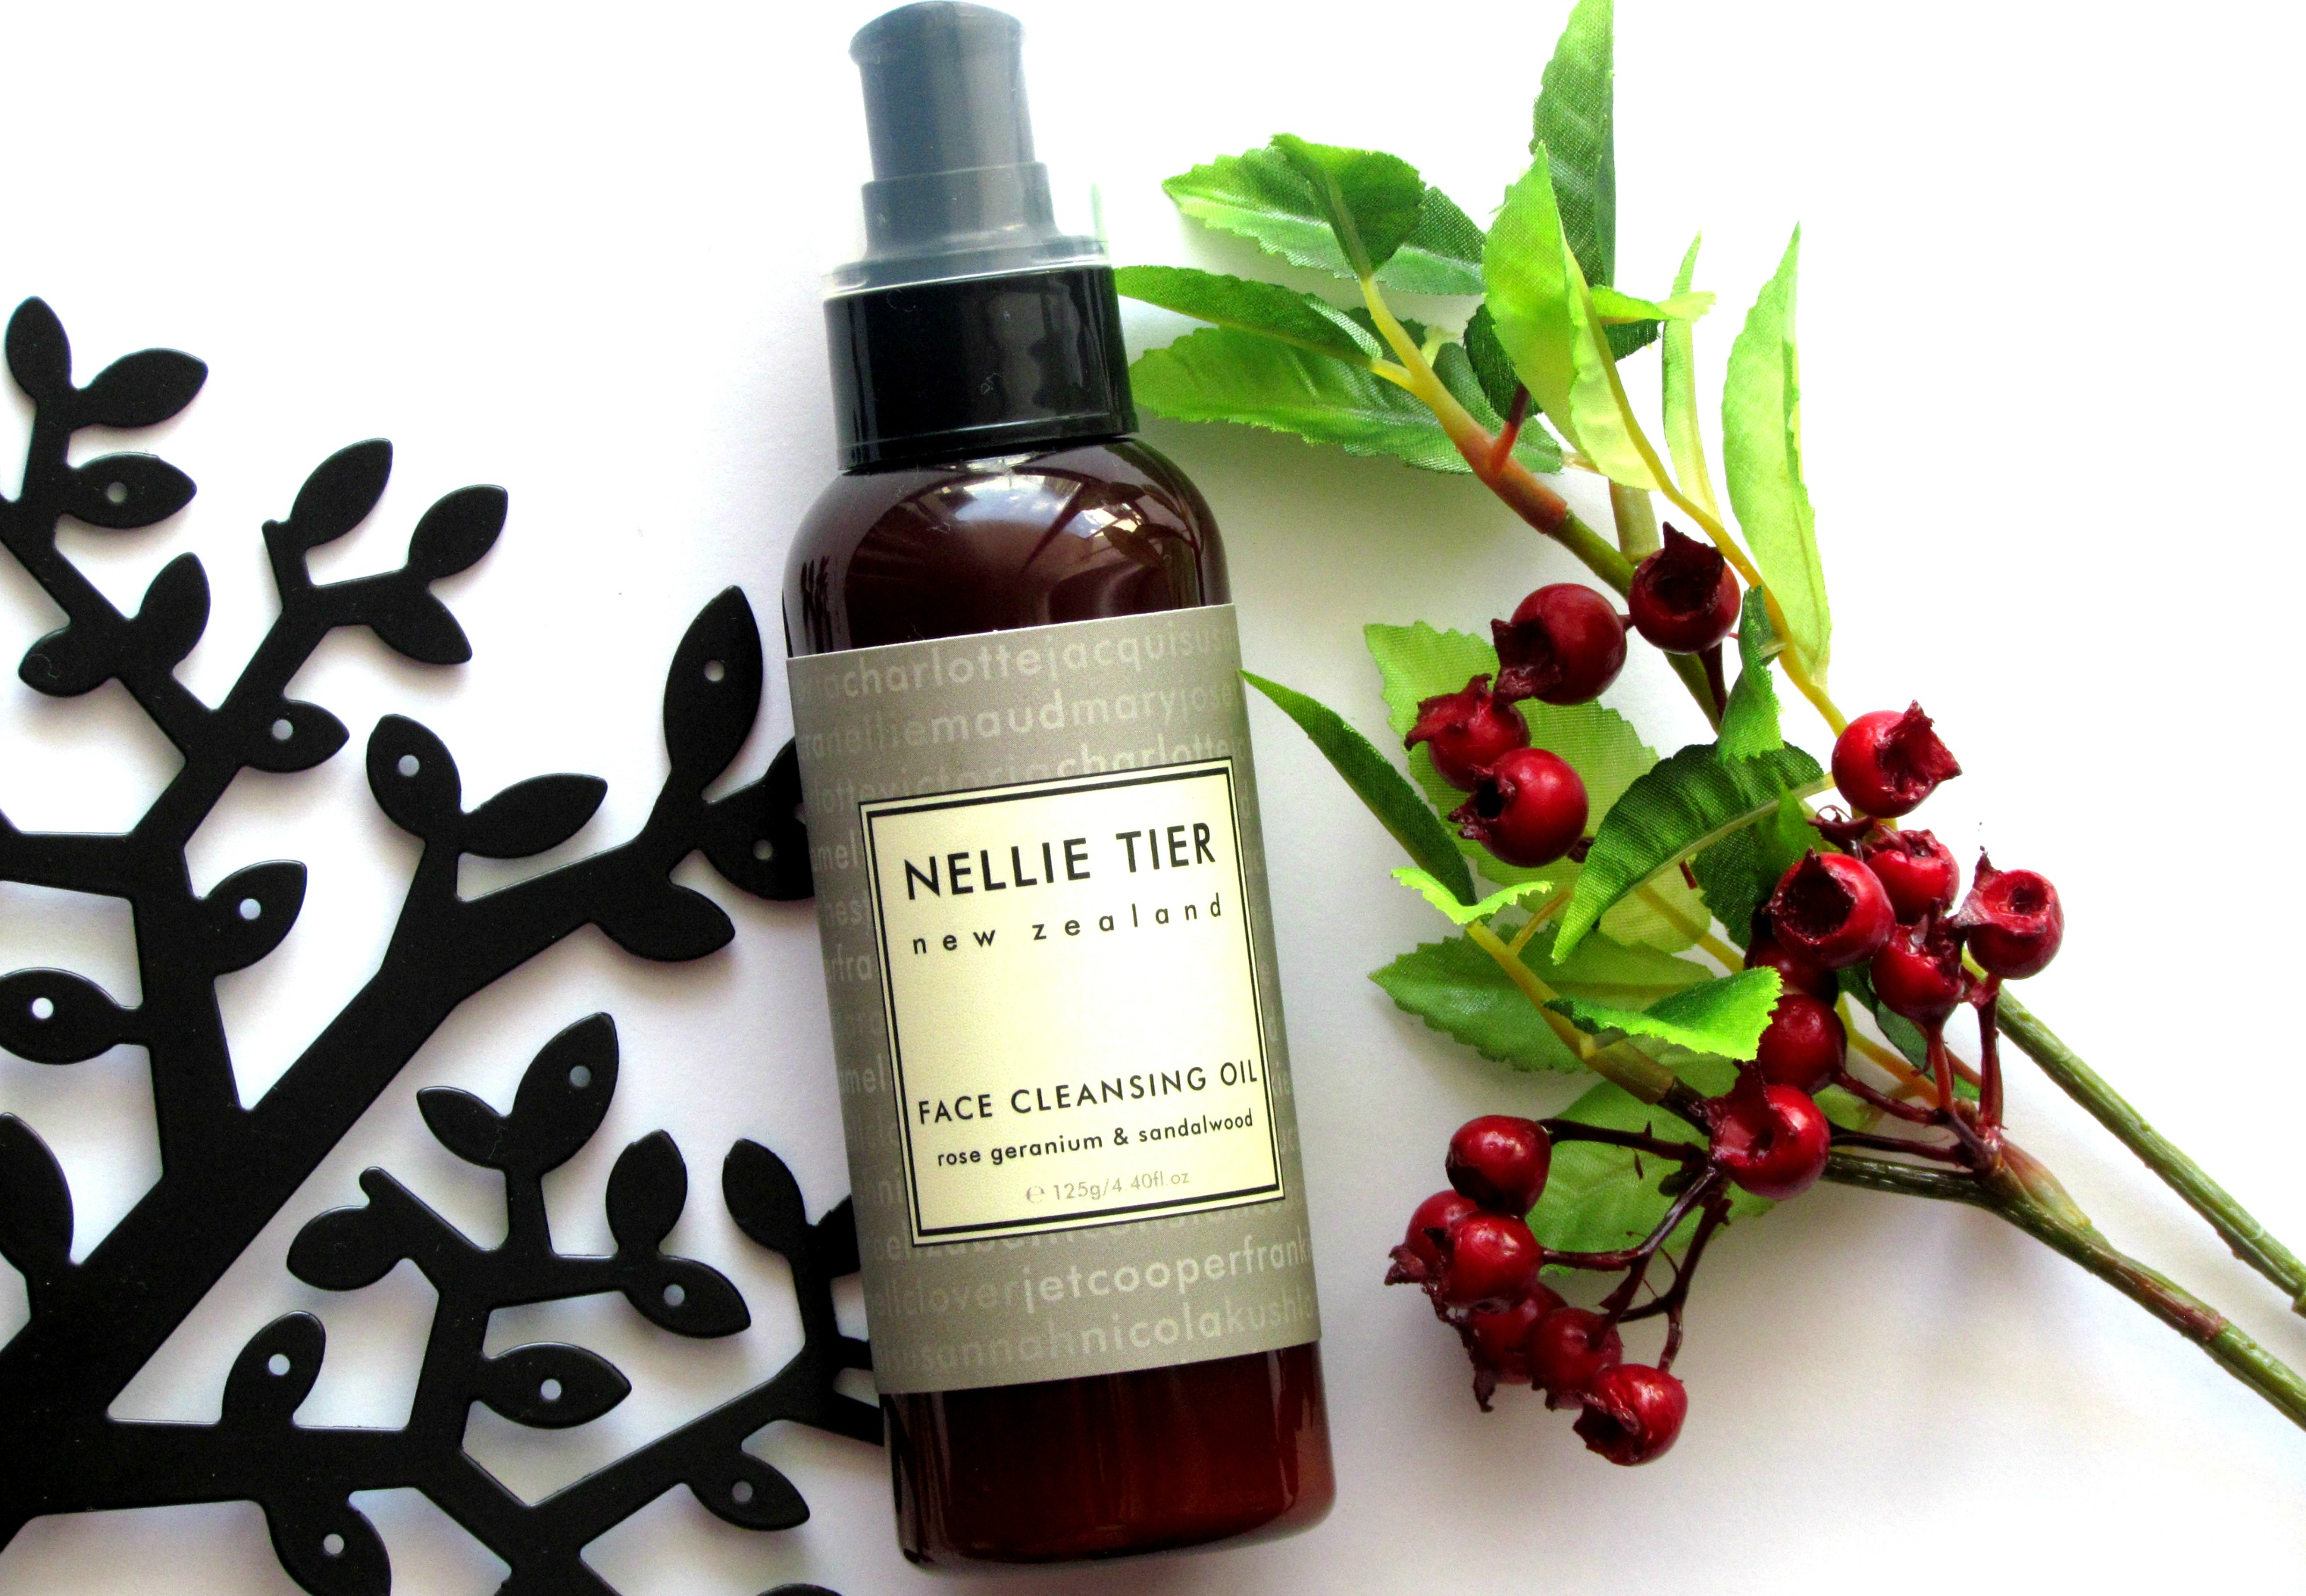 NELLIE TIER ROSE GERANIUM & SANDALWOOD FACE CLEANSING OIL